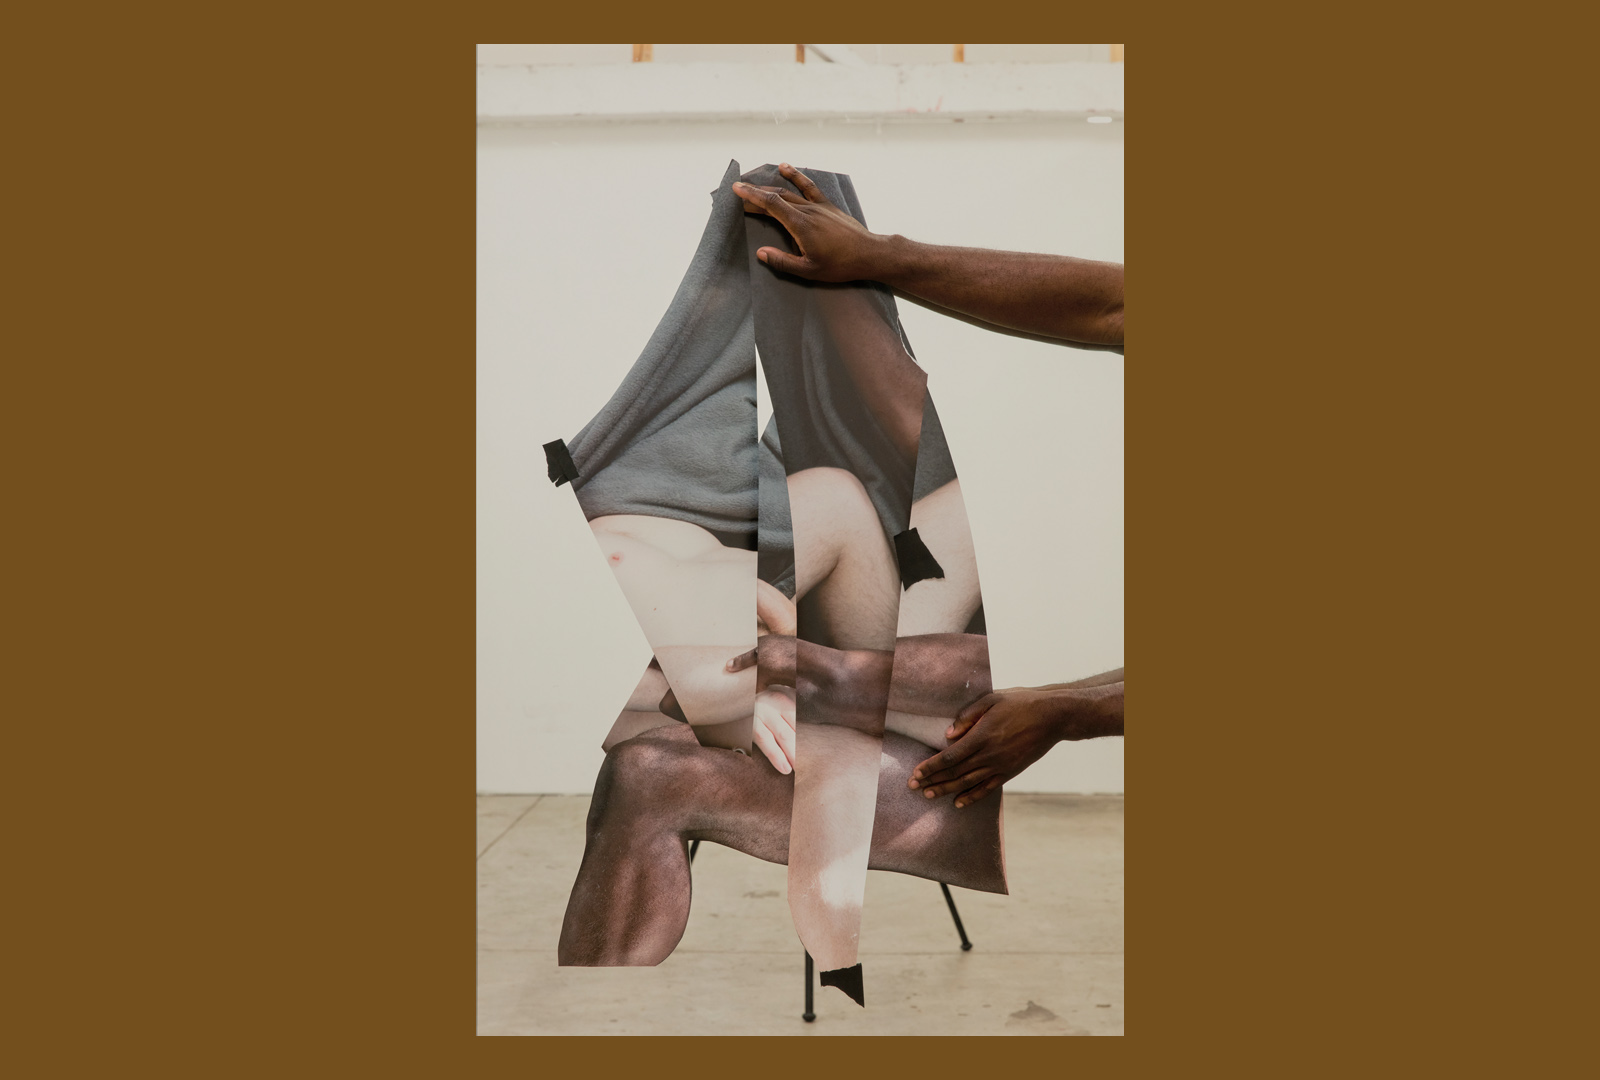 Photo collage of human body parts from multiple races